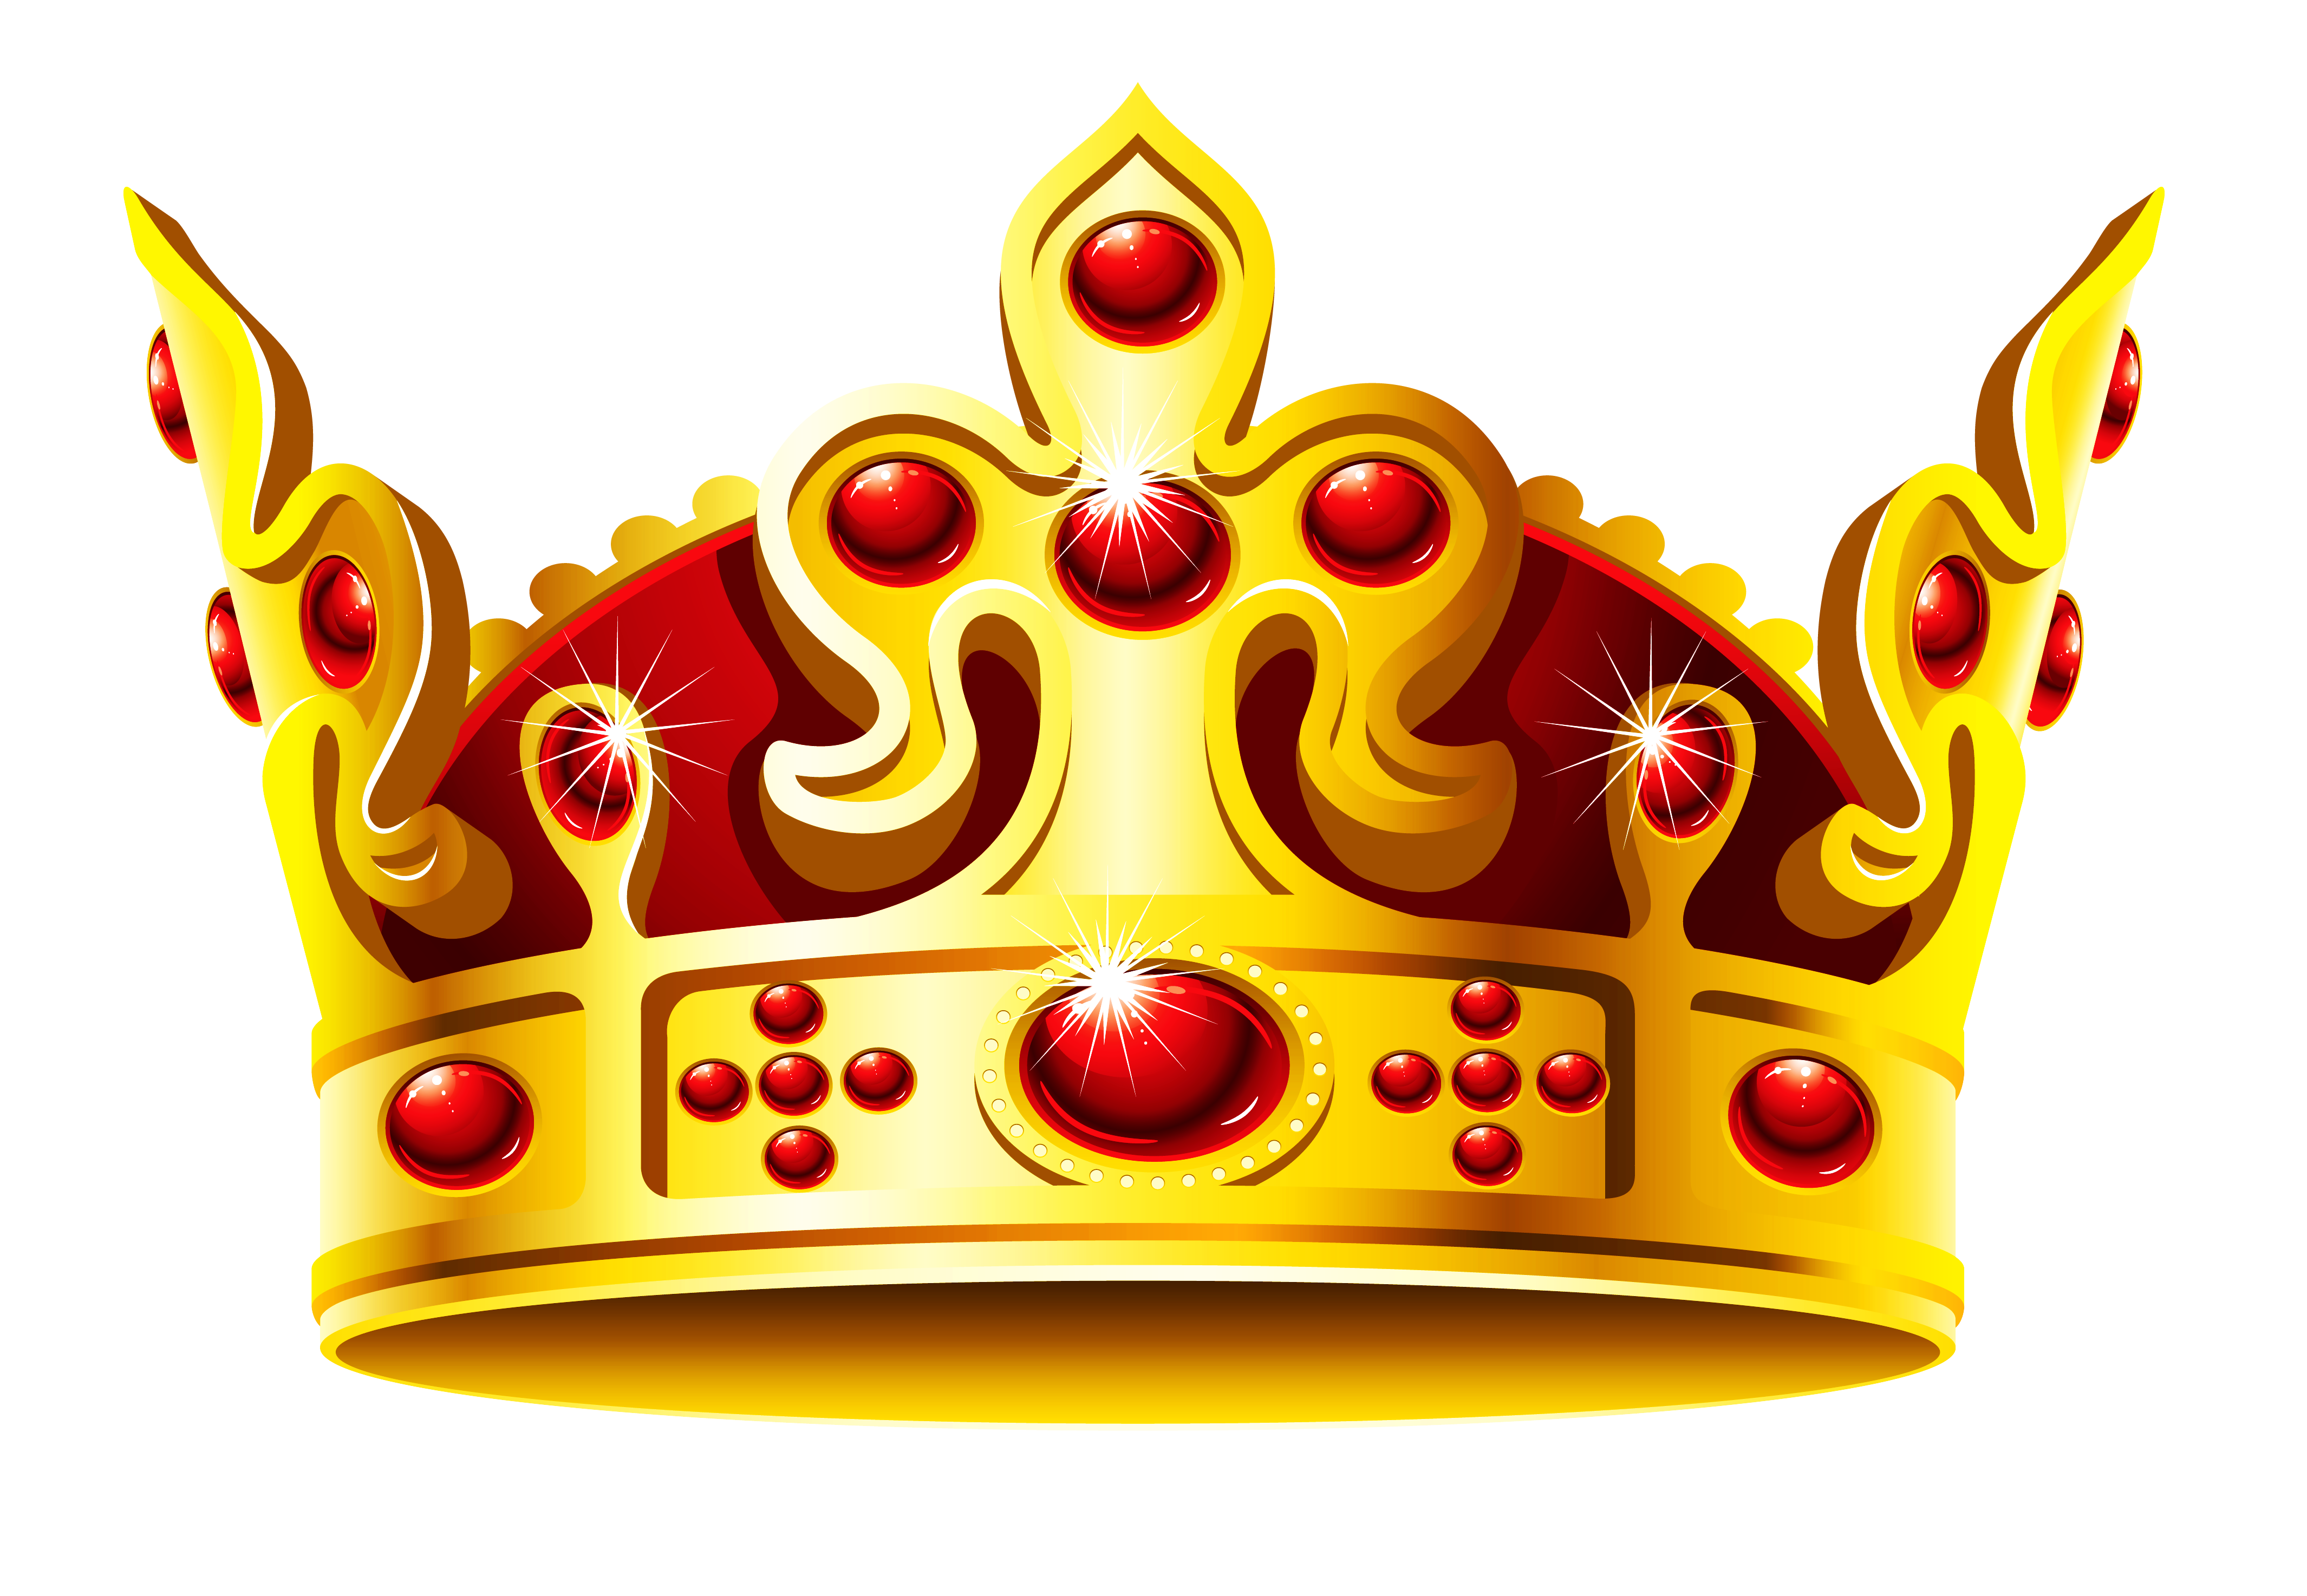 Crown dancer clipart clip freeuse stock Crown Clip art - crown jewels 4260*2948 transprent Png Free Download ... clip freeuse stock